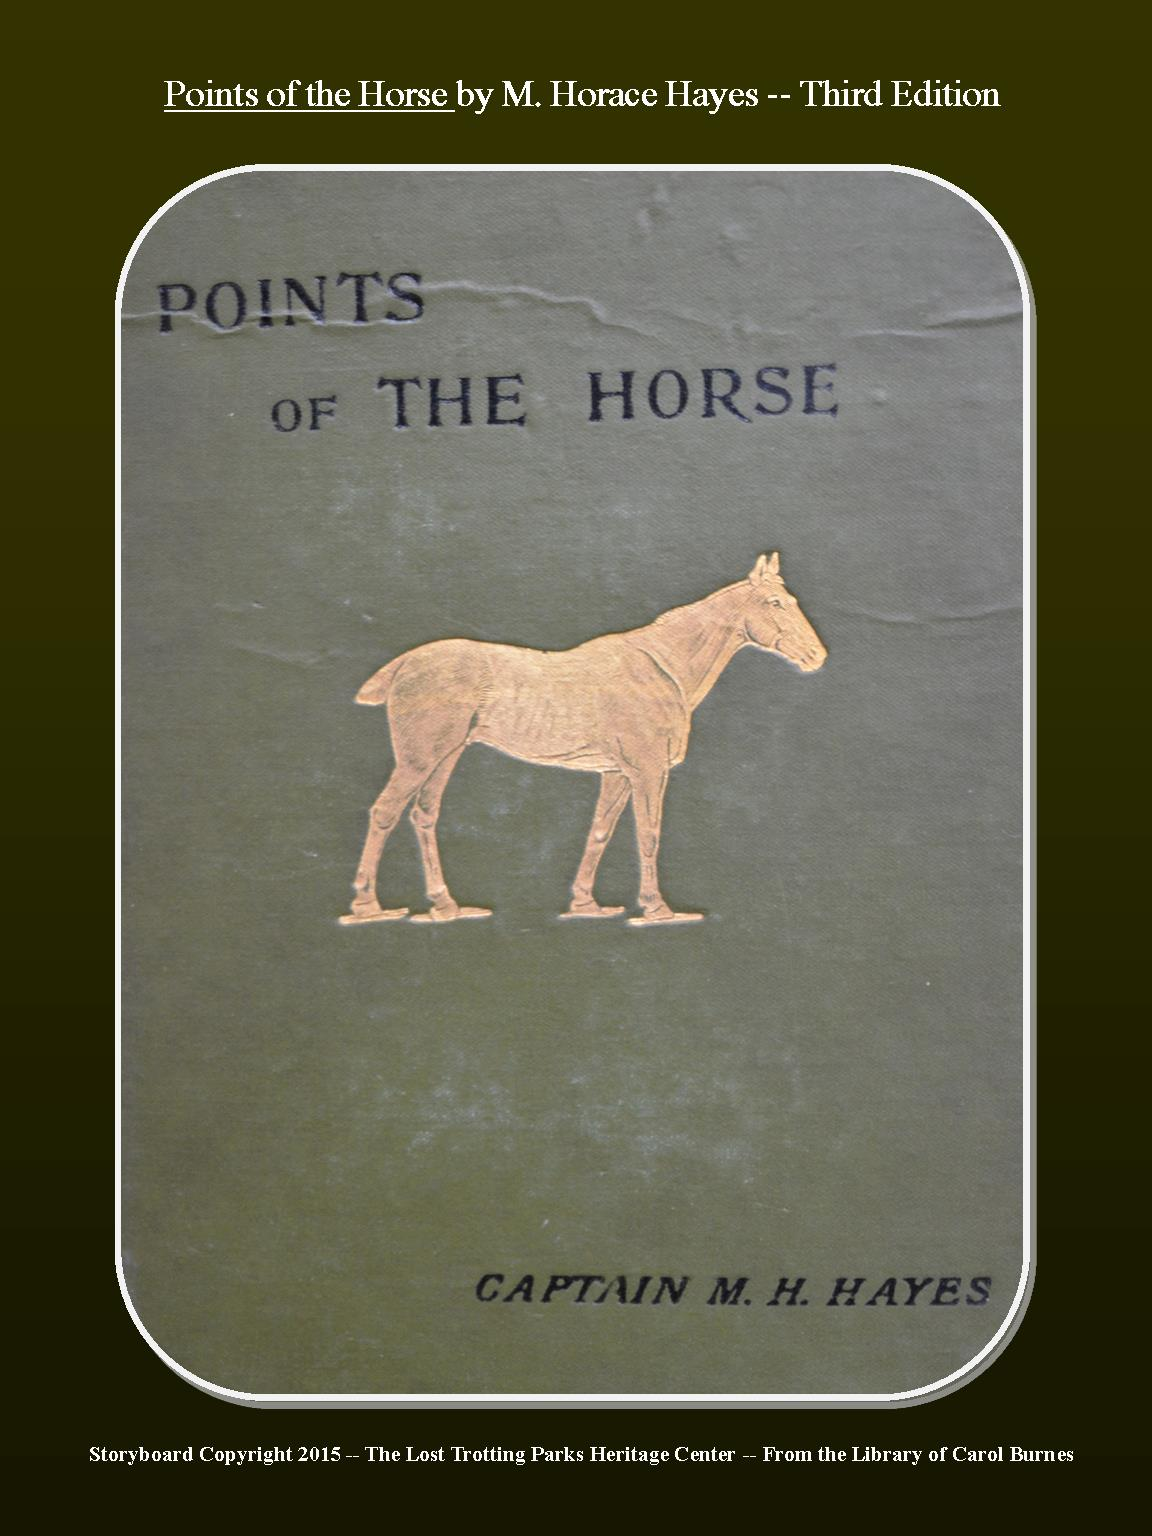 The Points of the Horse — Third Edition — First Published in the 19th Century